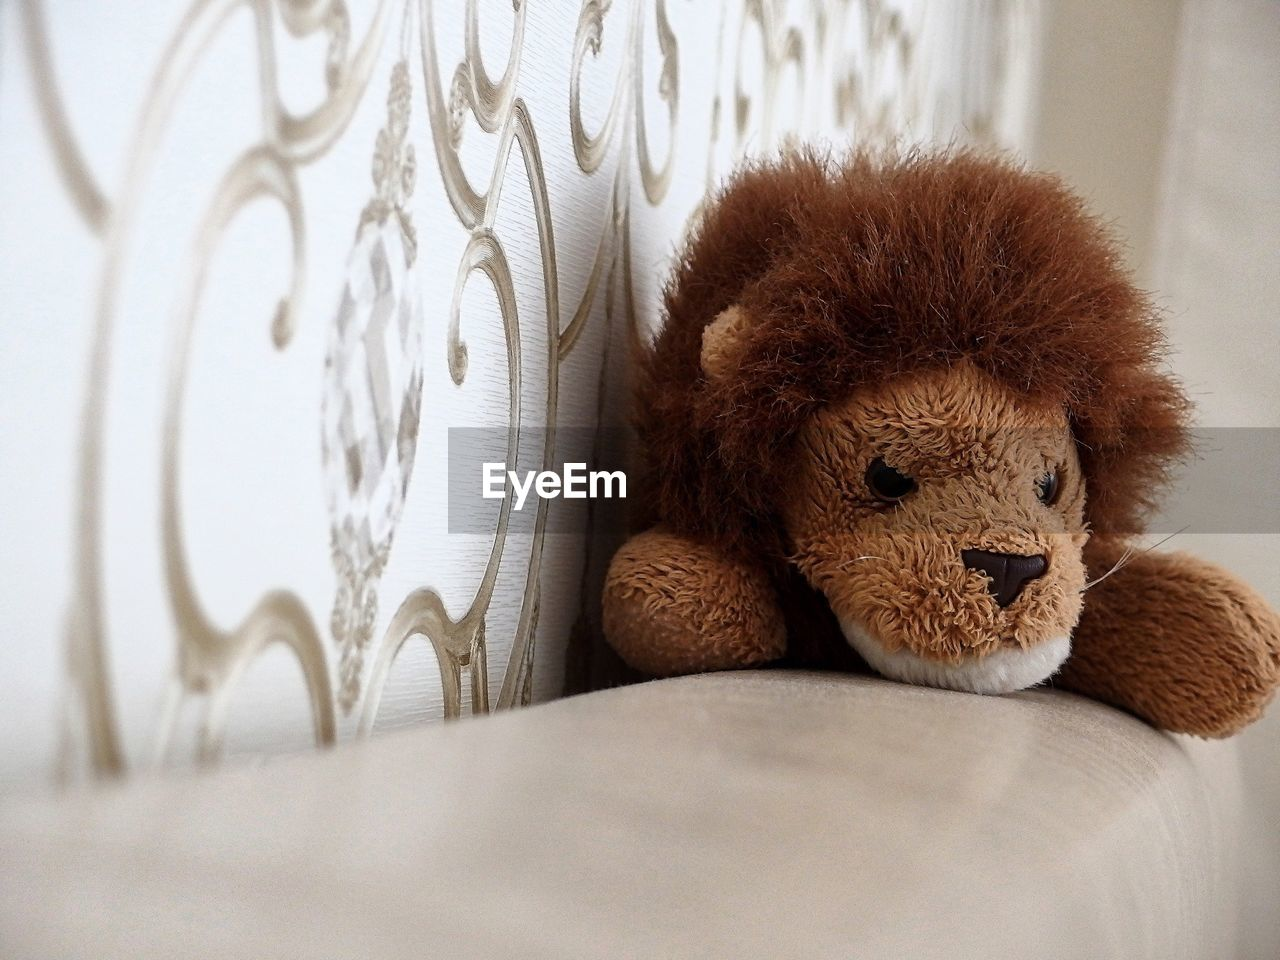 teddy bear, toy, indoors, stuffed toy, no people, furniture, animal representation, bed, close-up, home interior, relaxation, stuffed, pillow, selective focus, comfortable, animal, representation, animal themes, brown, mammal, softness